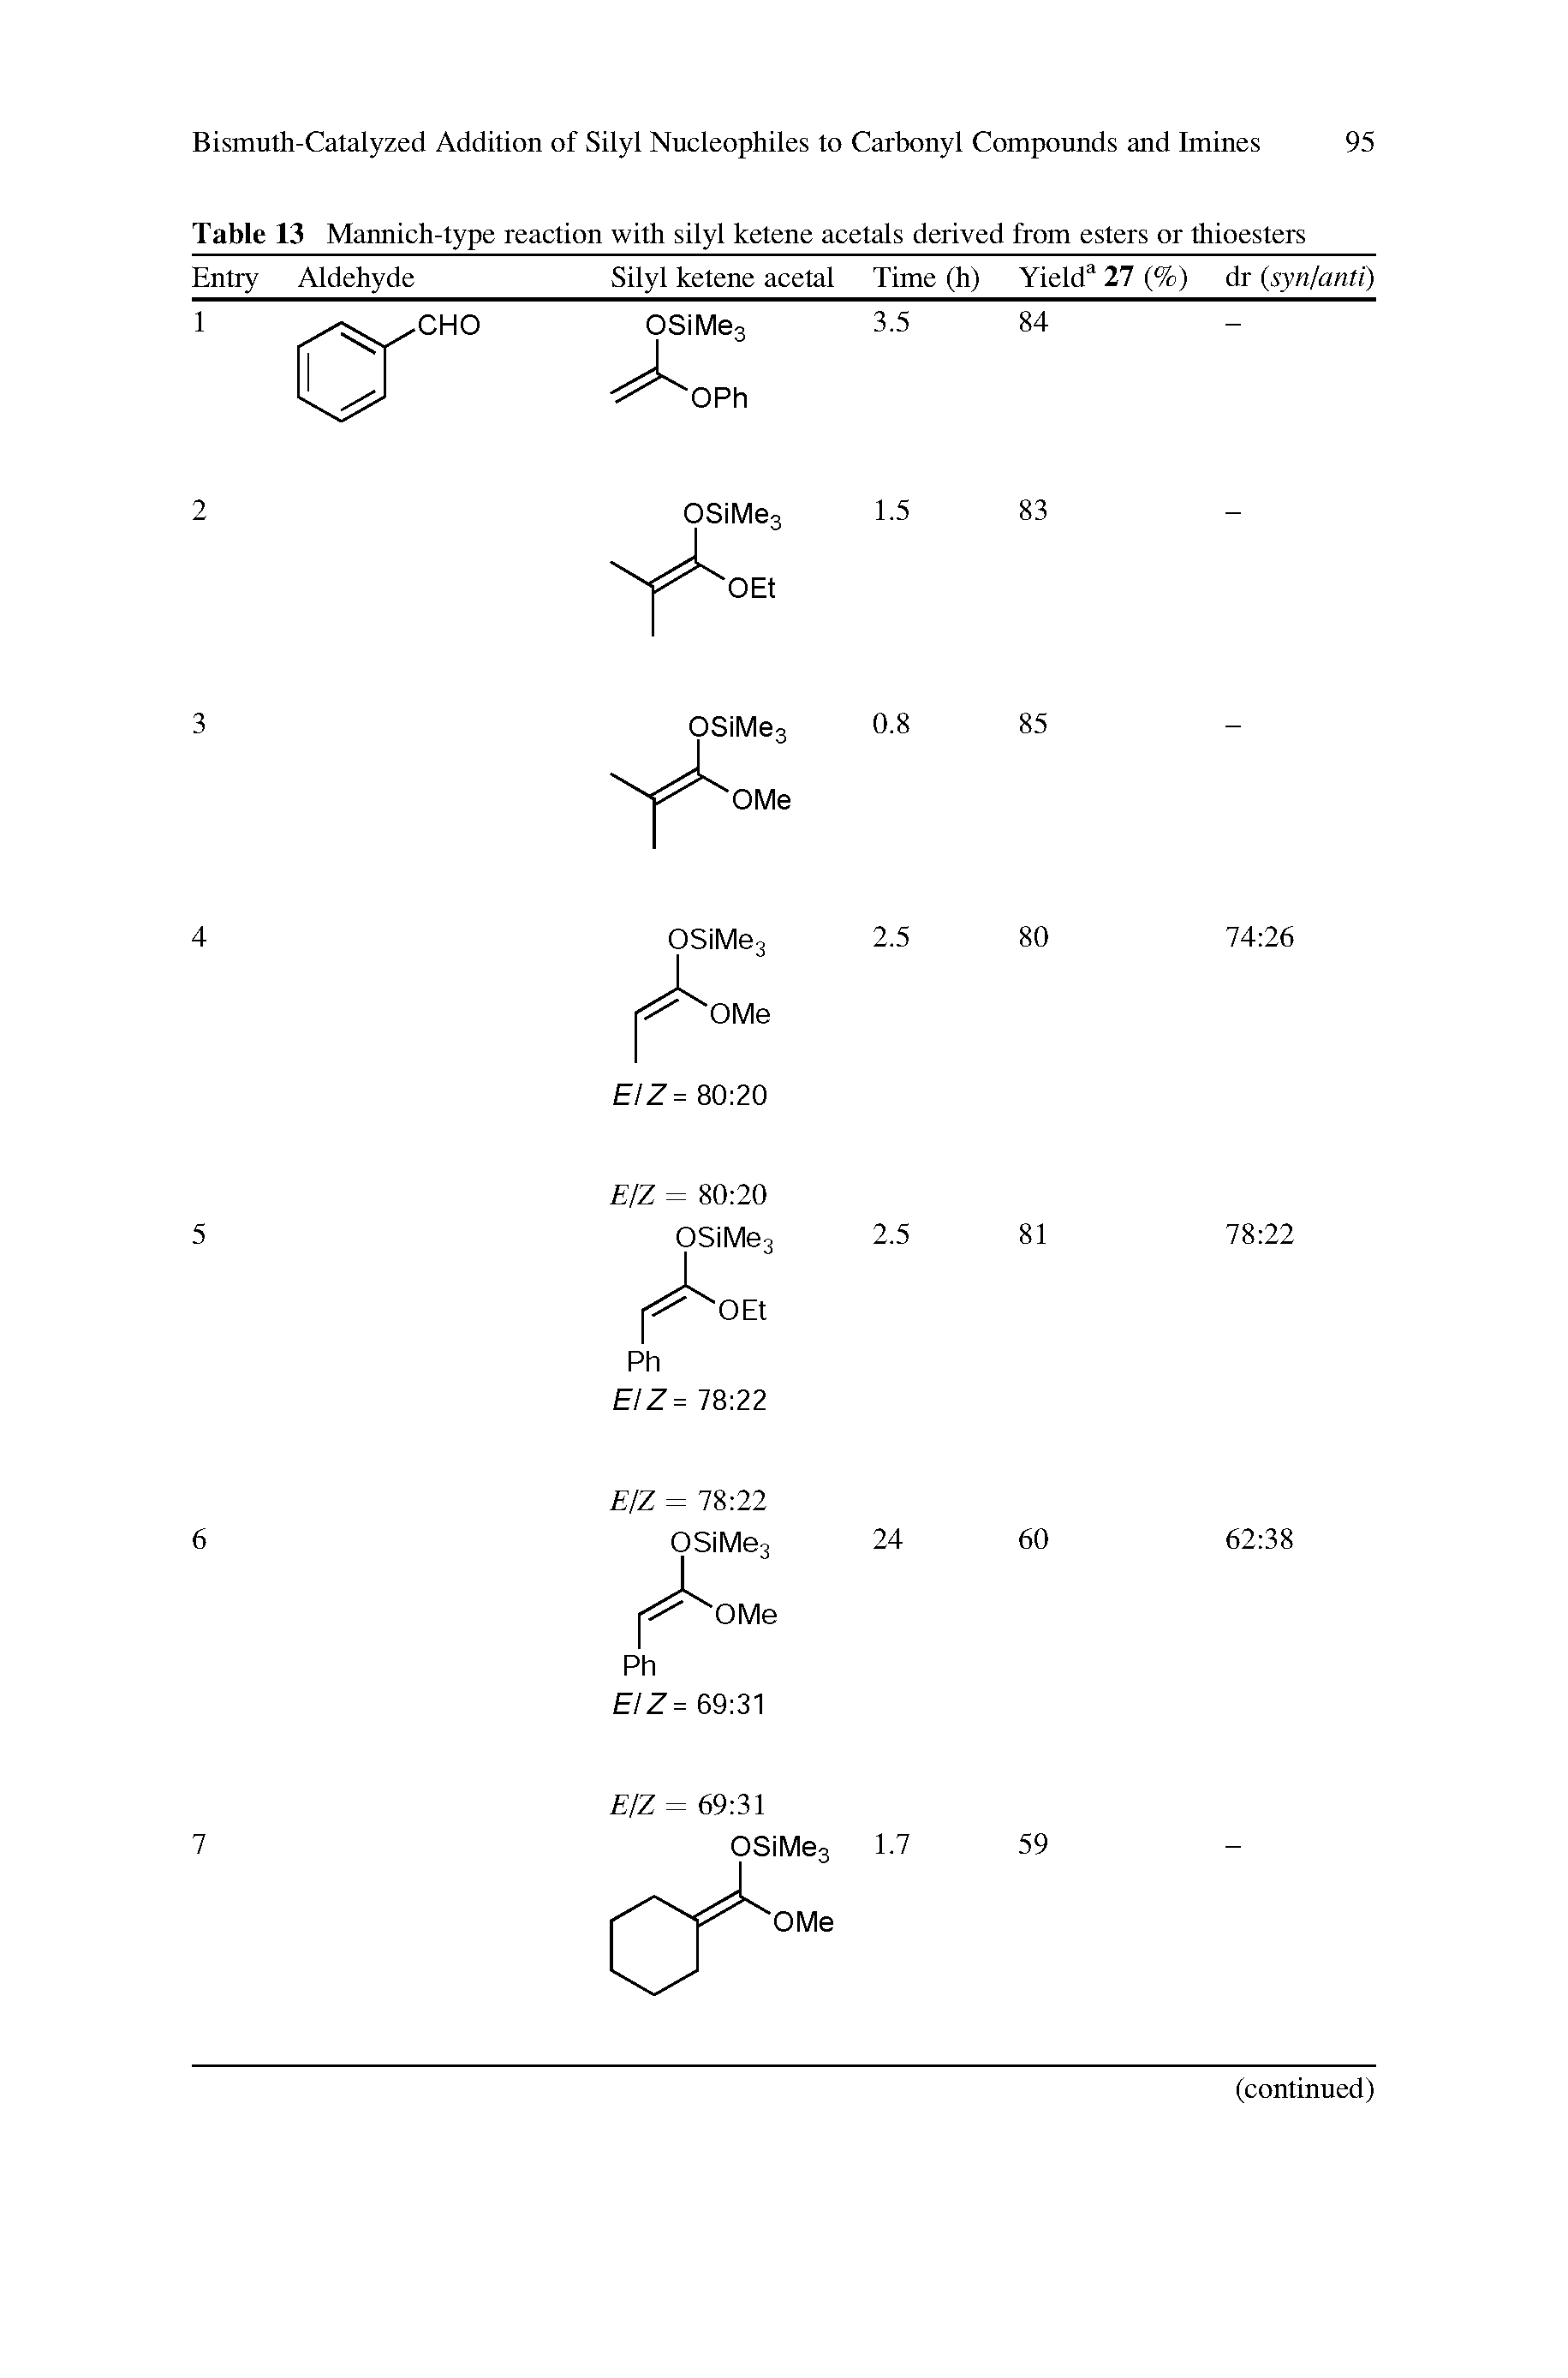 "Table 13 Mannich-type reaction with silyl ketene acetals <a href=""/info/derivative_from"">derived from</a> esters or thioesters"